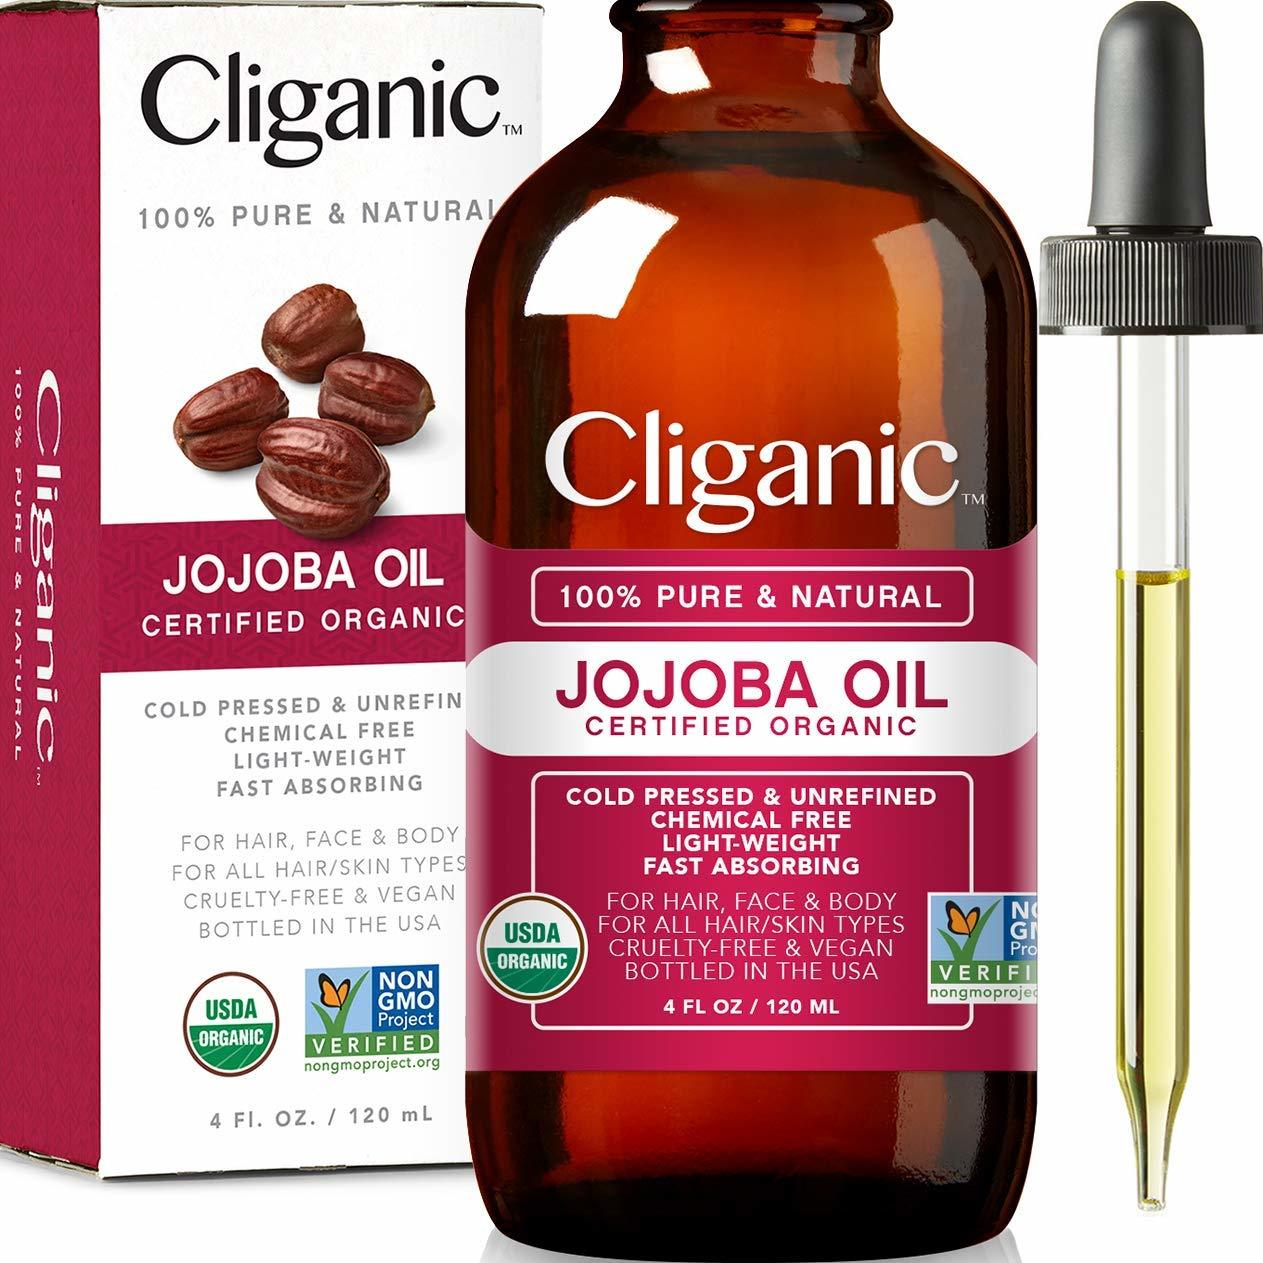 Cliganic Jojoba oil review